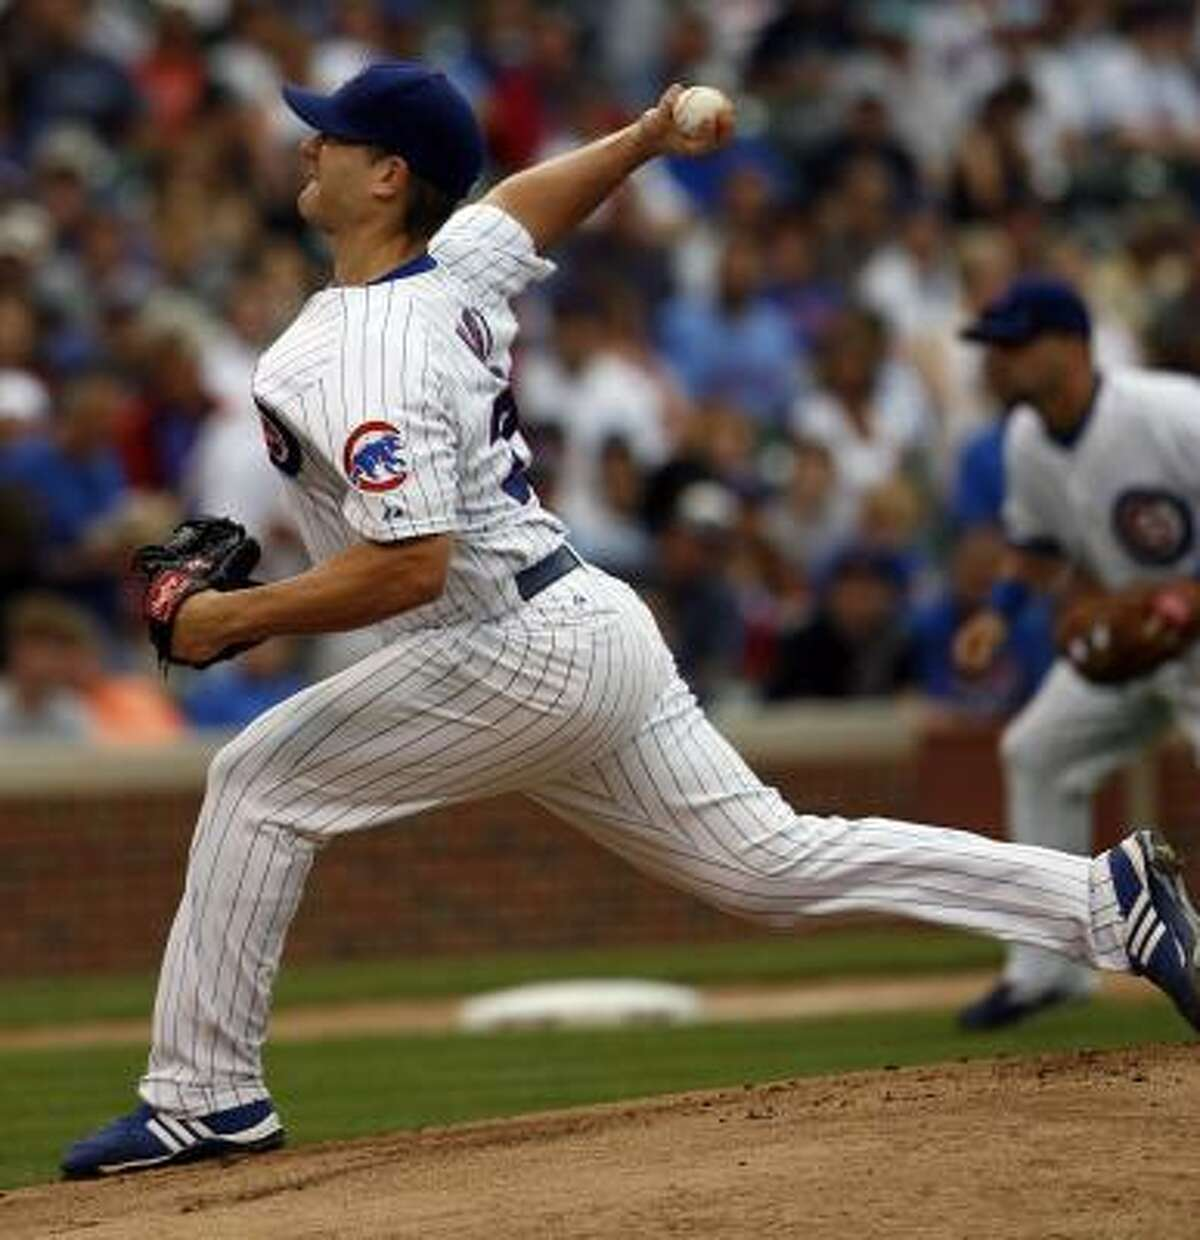 July 30: Cubs 12, Astros 3 Cubs starter pitcher Kevin Hart held the Astros to three runs on six hits in six innings of work.